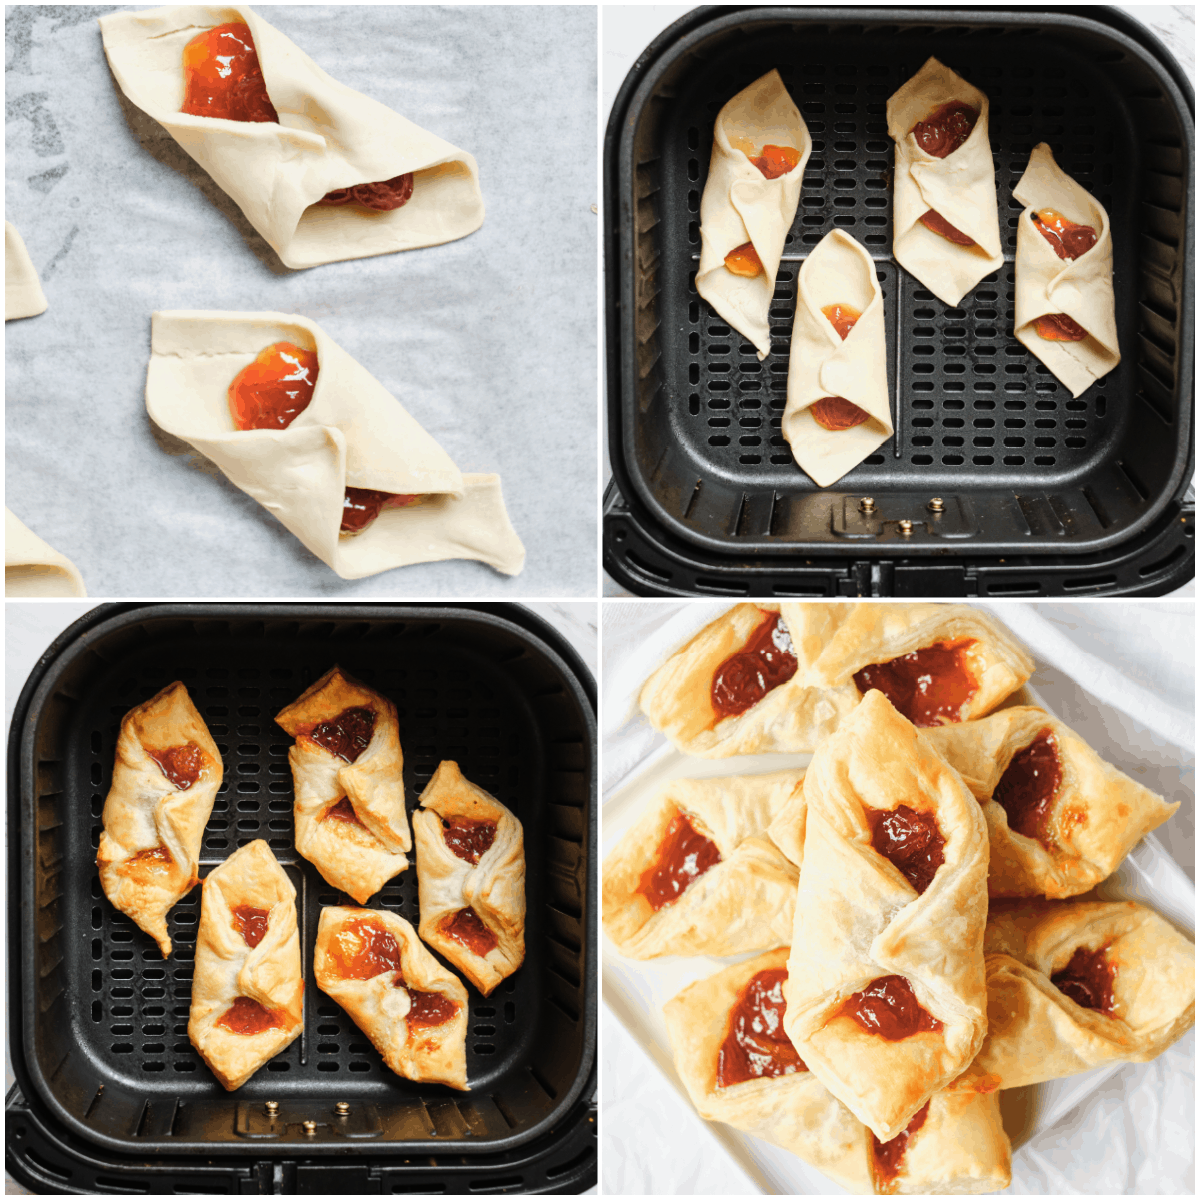 image collage showing the final steps for making air fryer puff pastry breakfast bites